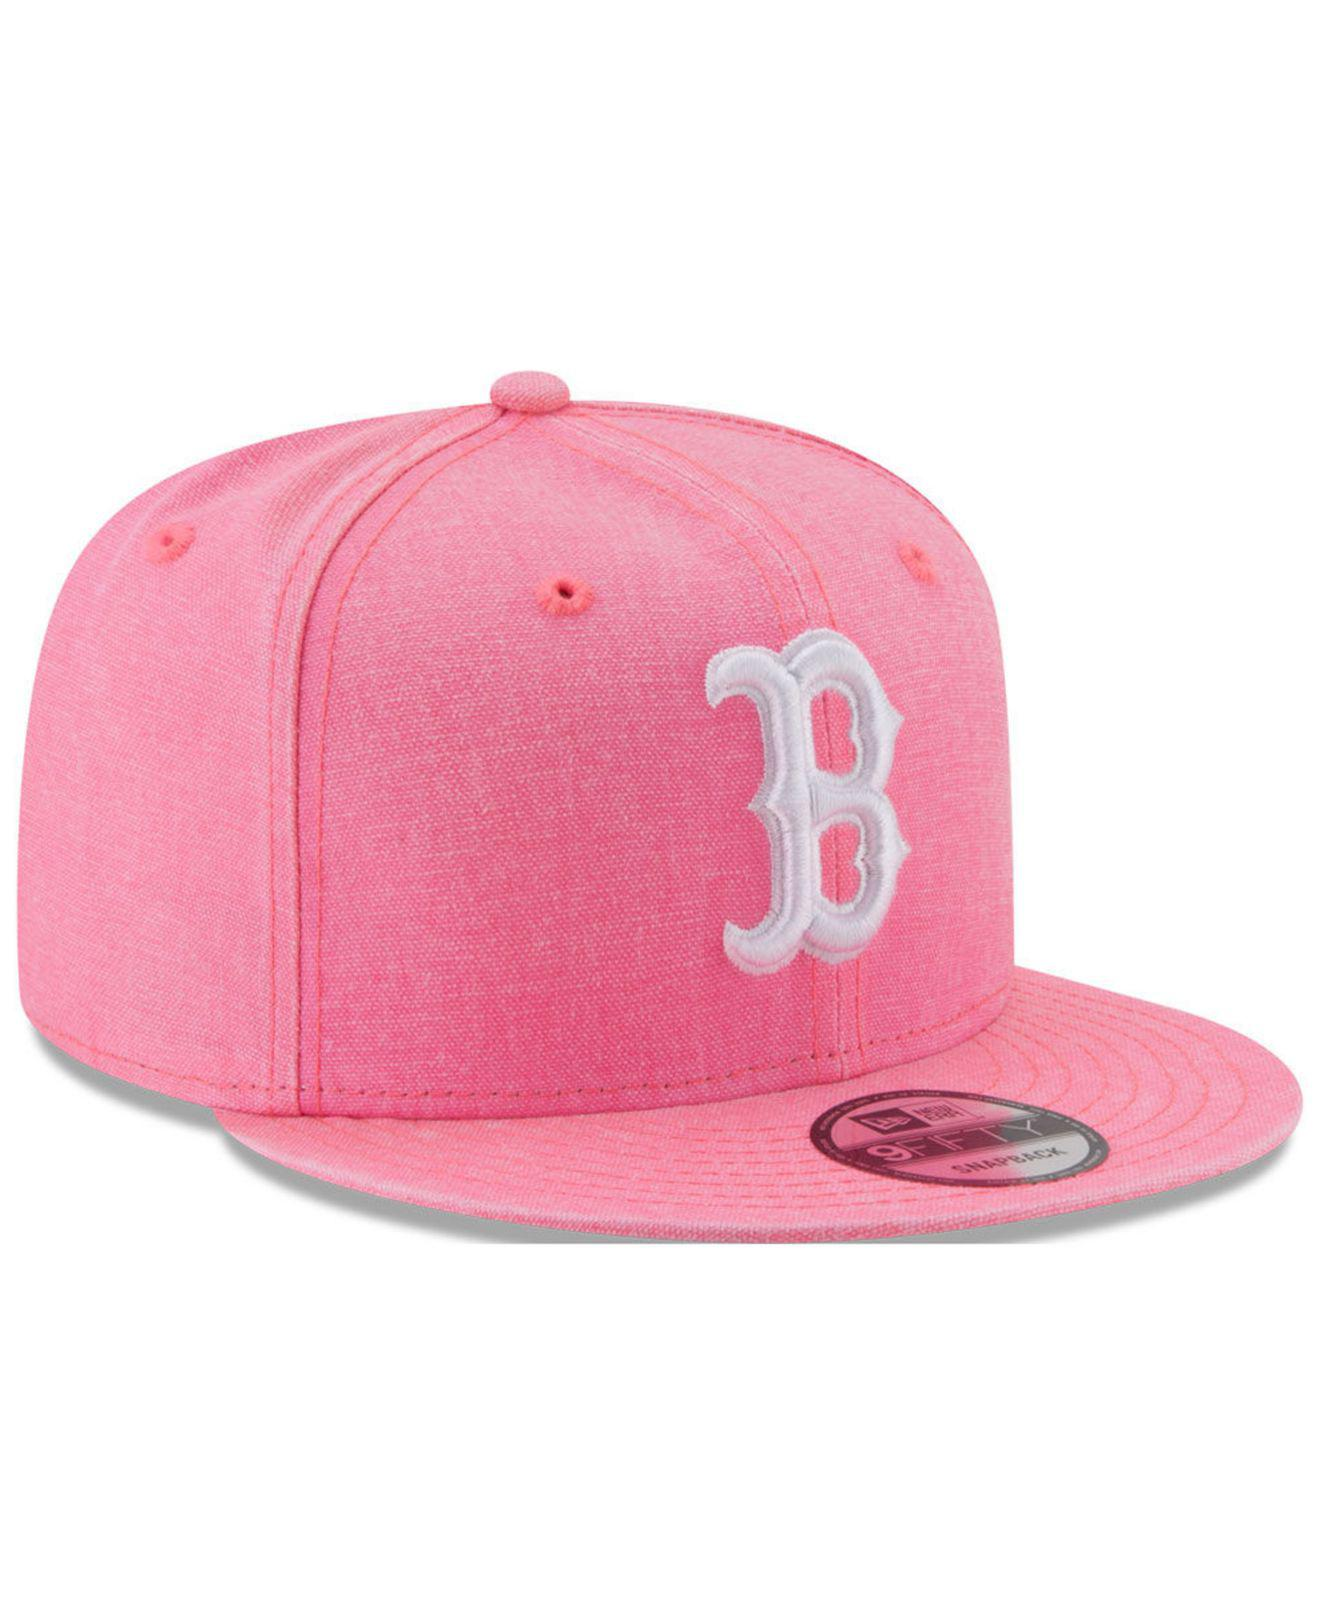 low priced ef7f7 ae3fc italy chicago white sox new era mlb neon time 9fifty snapback cap e6f6d  87374  cheapest lyst ktz boston red sox neon time 9fifty snapback cap in  pink 2e456 ...